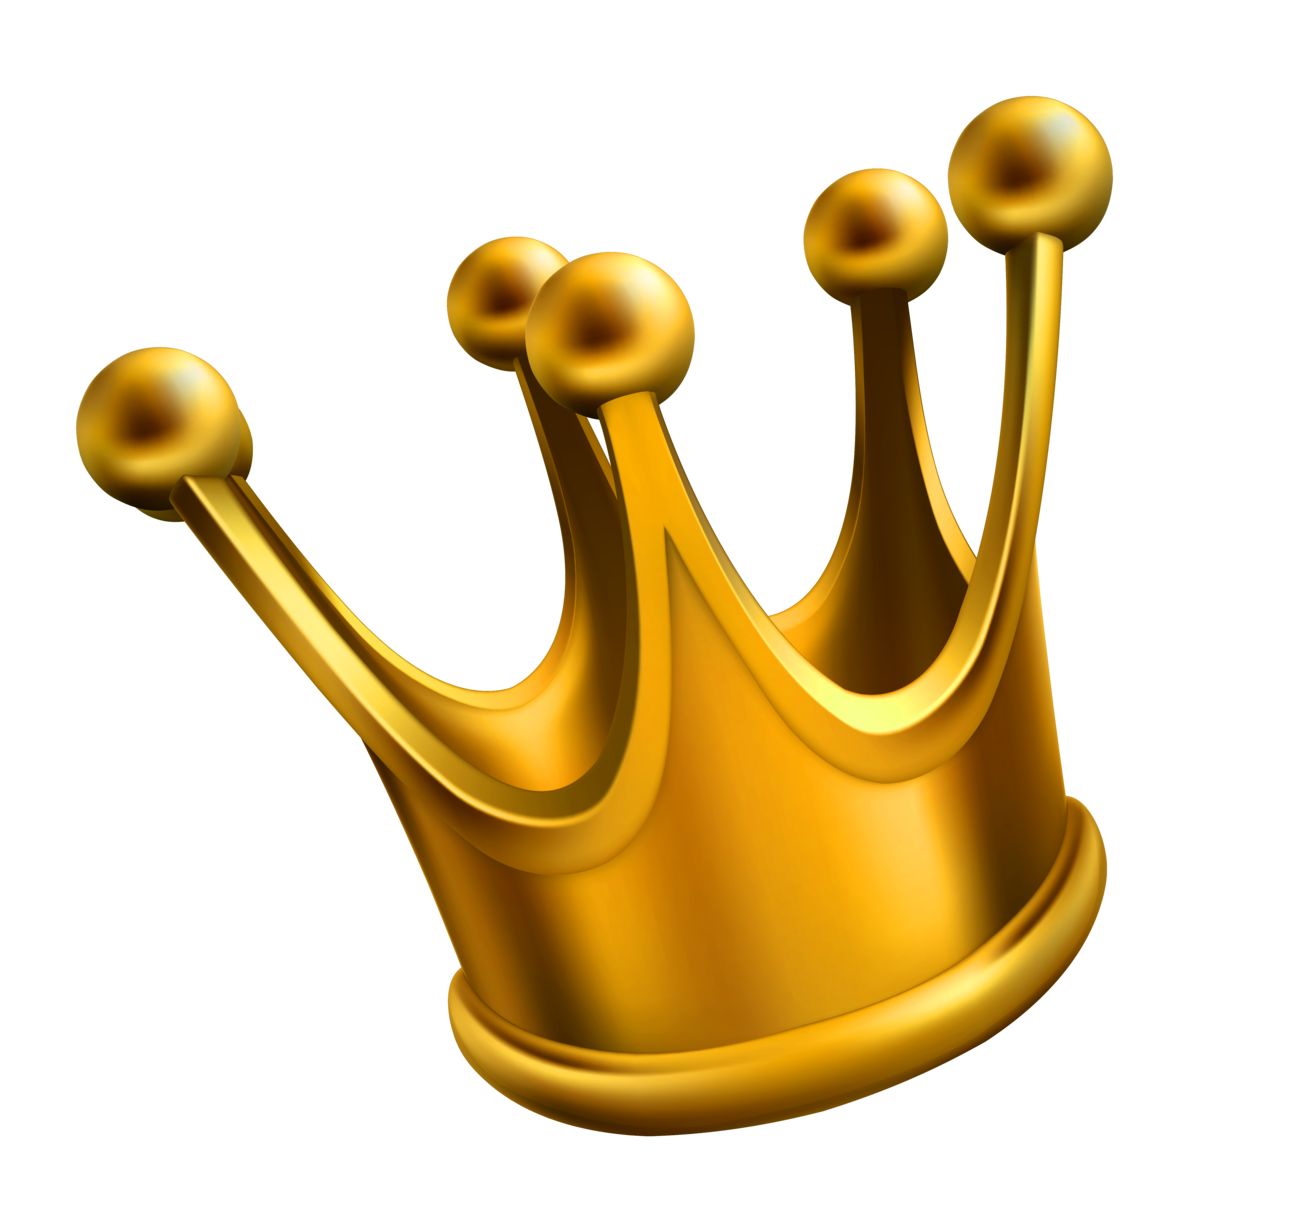 Crown emoji clipart clipart free library Simple Golden Crown Png Clipart clipart free library